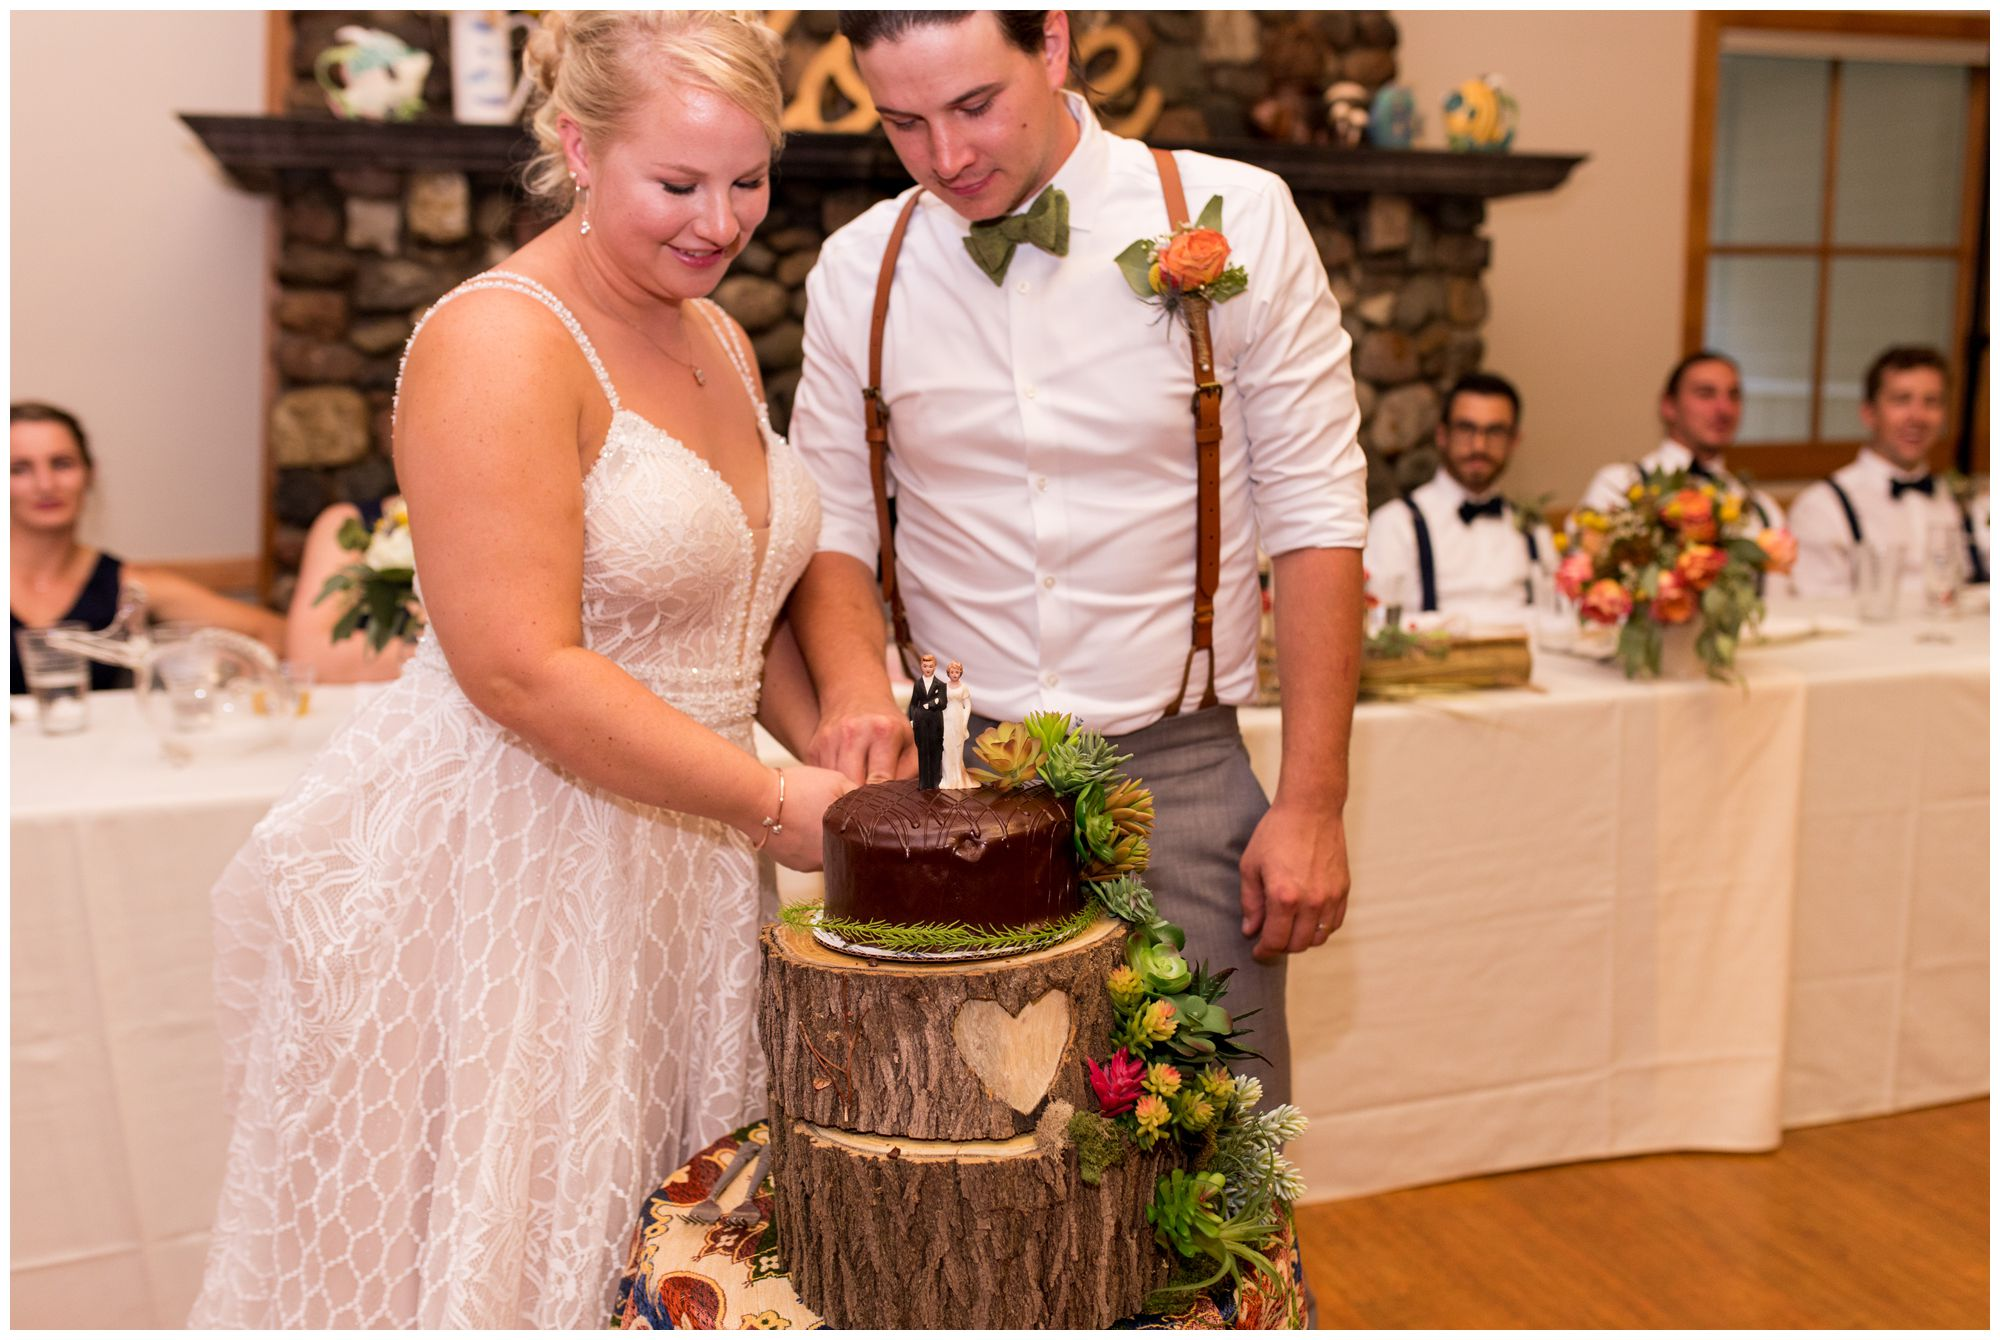 bride and groom cut cake during wedding reception at Forest Park Inn